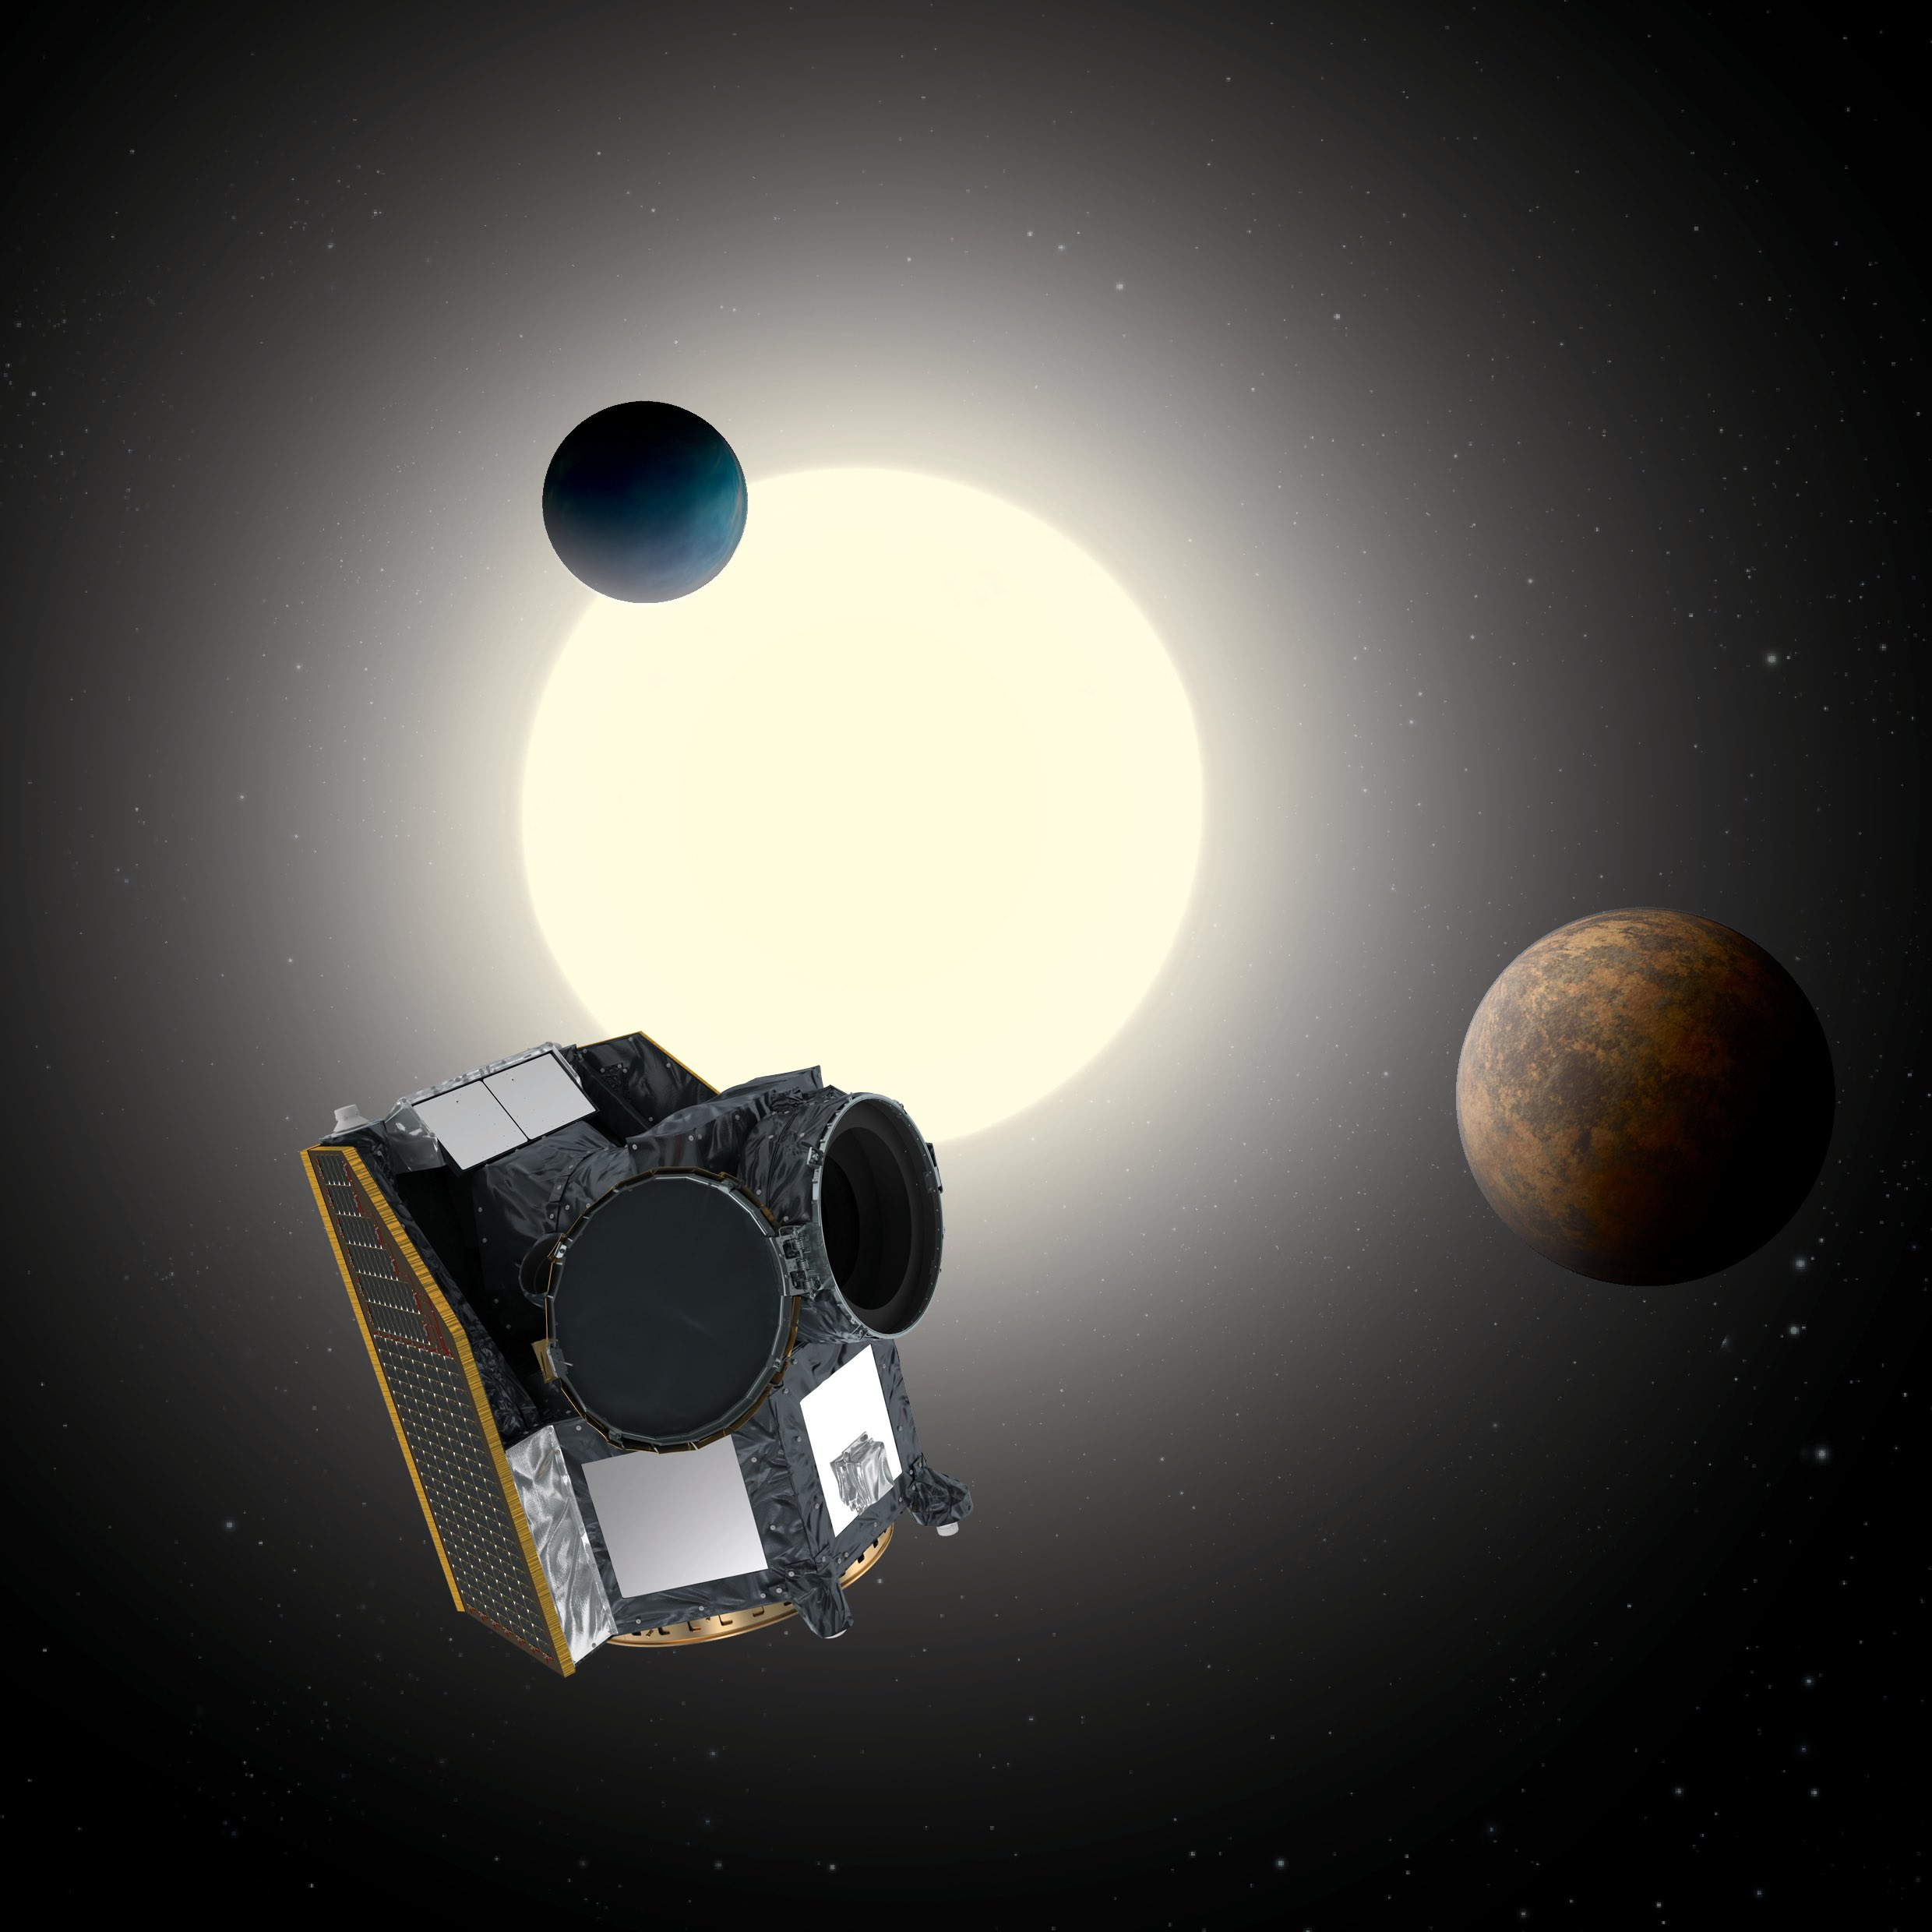 CHEOPS_Exoplanet_mission_3_sqr_low.jpg